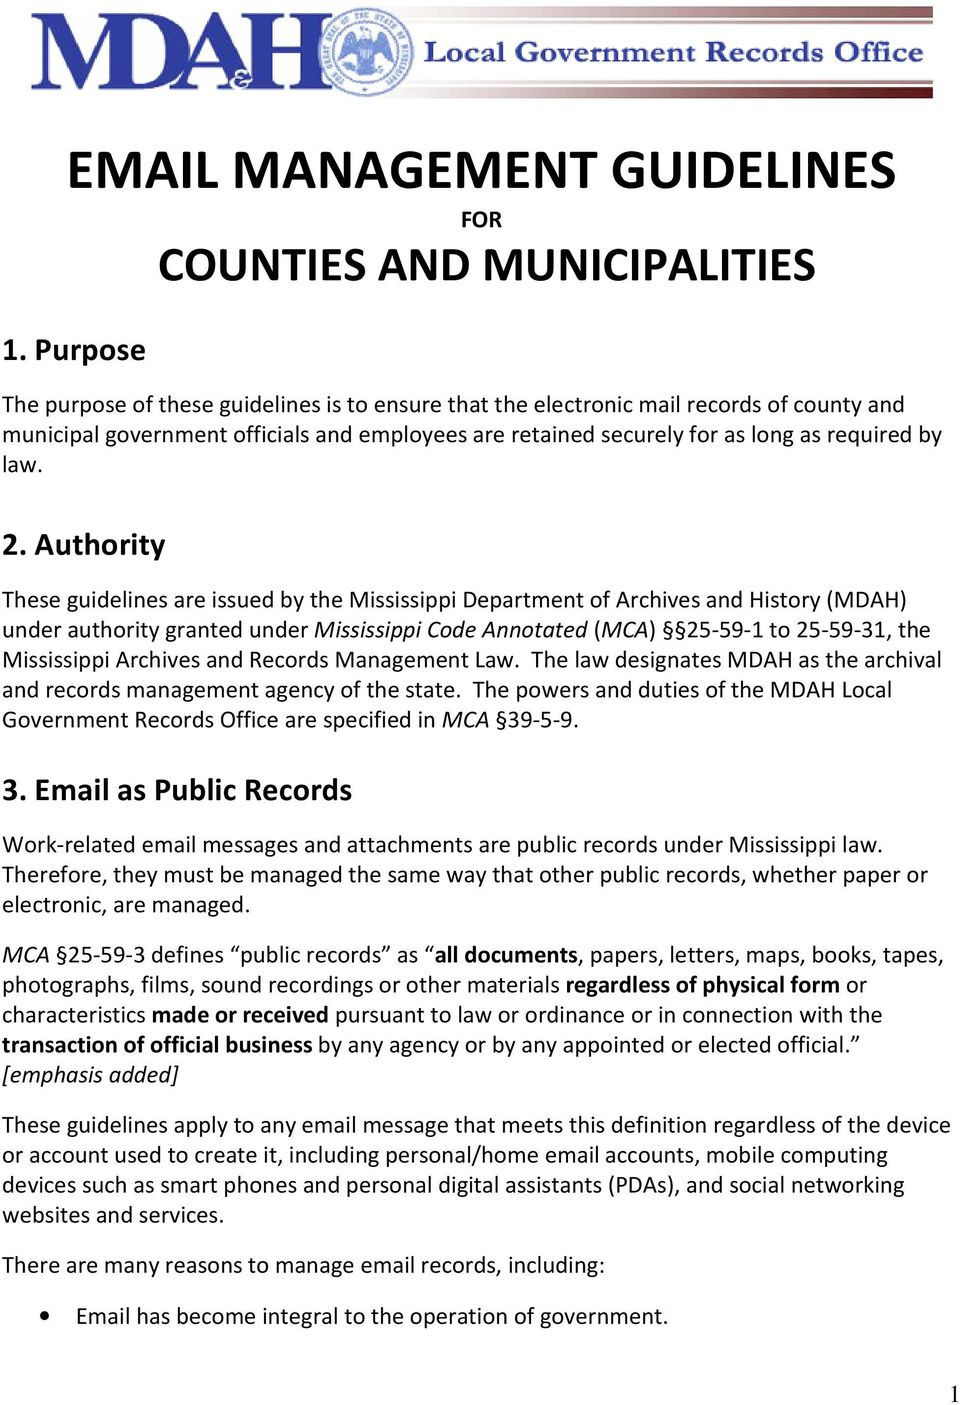 2. Authority These guidelines are issued by the Mississippi Department of Archives and History (MDAH) under authority granted under Mississippi Code Annotated (MCA) 25-59-1 to 25-59-31, the